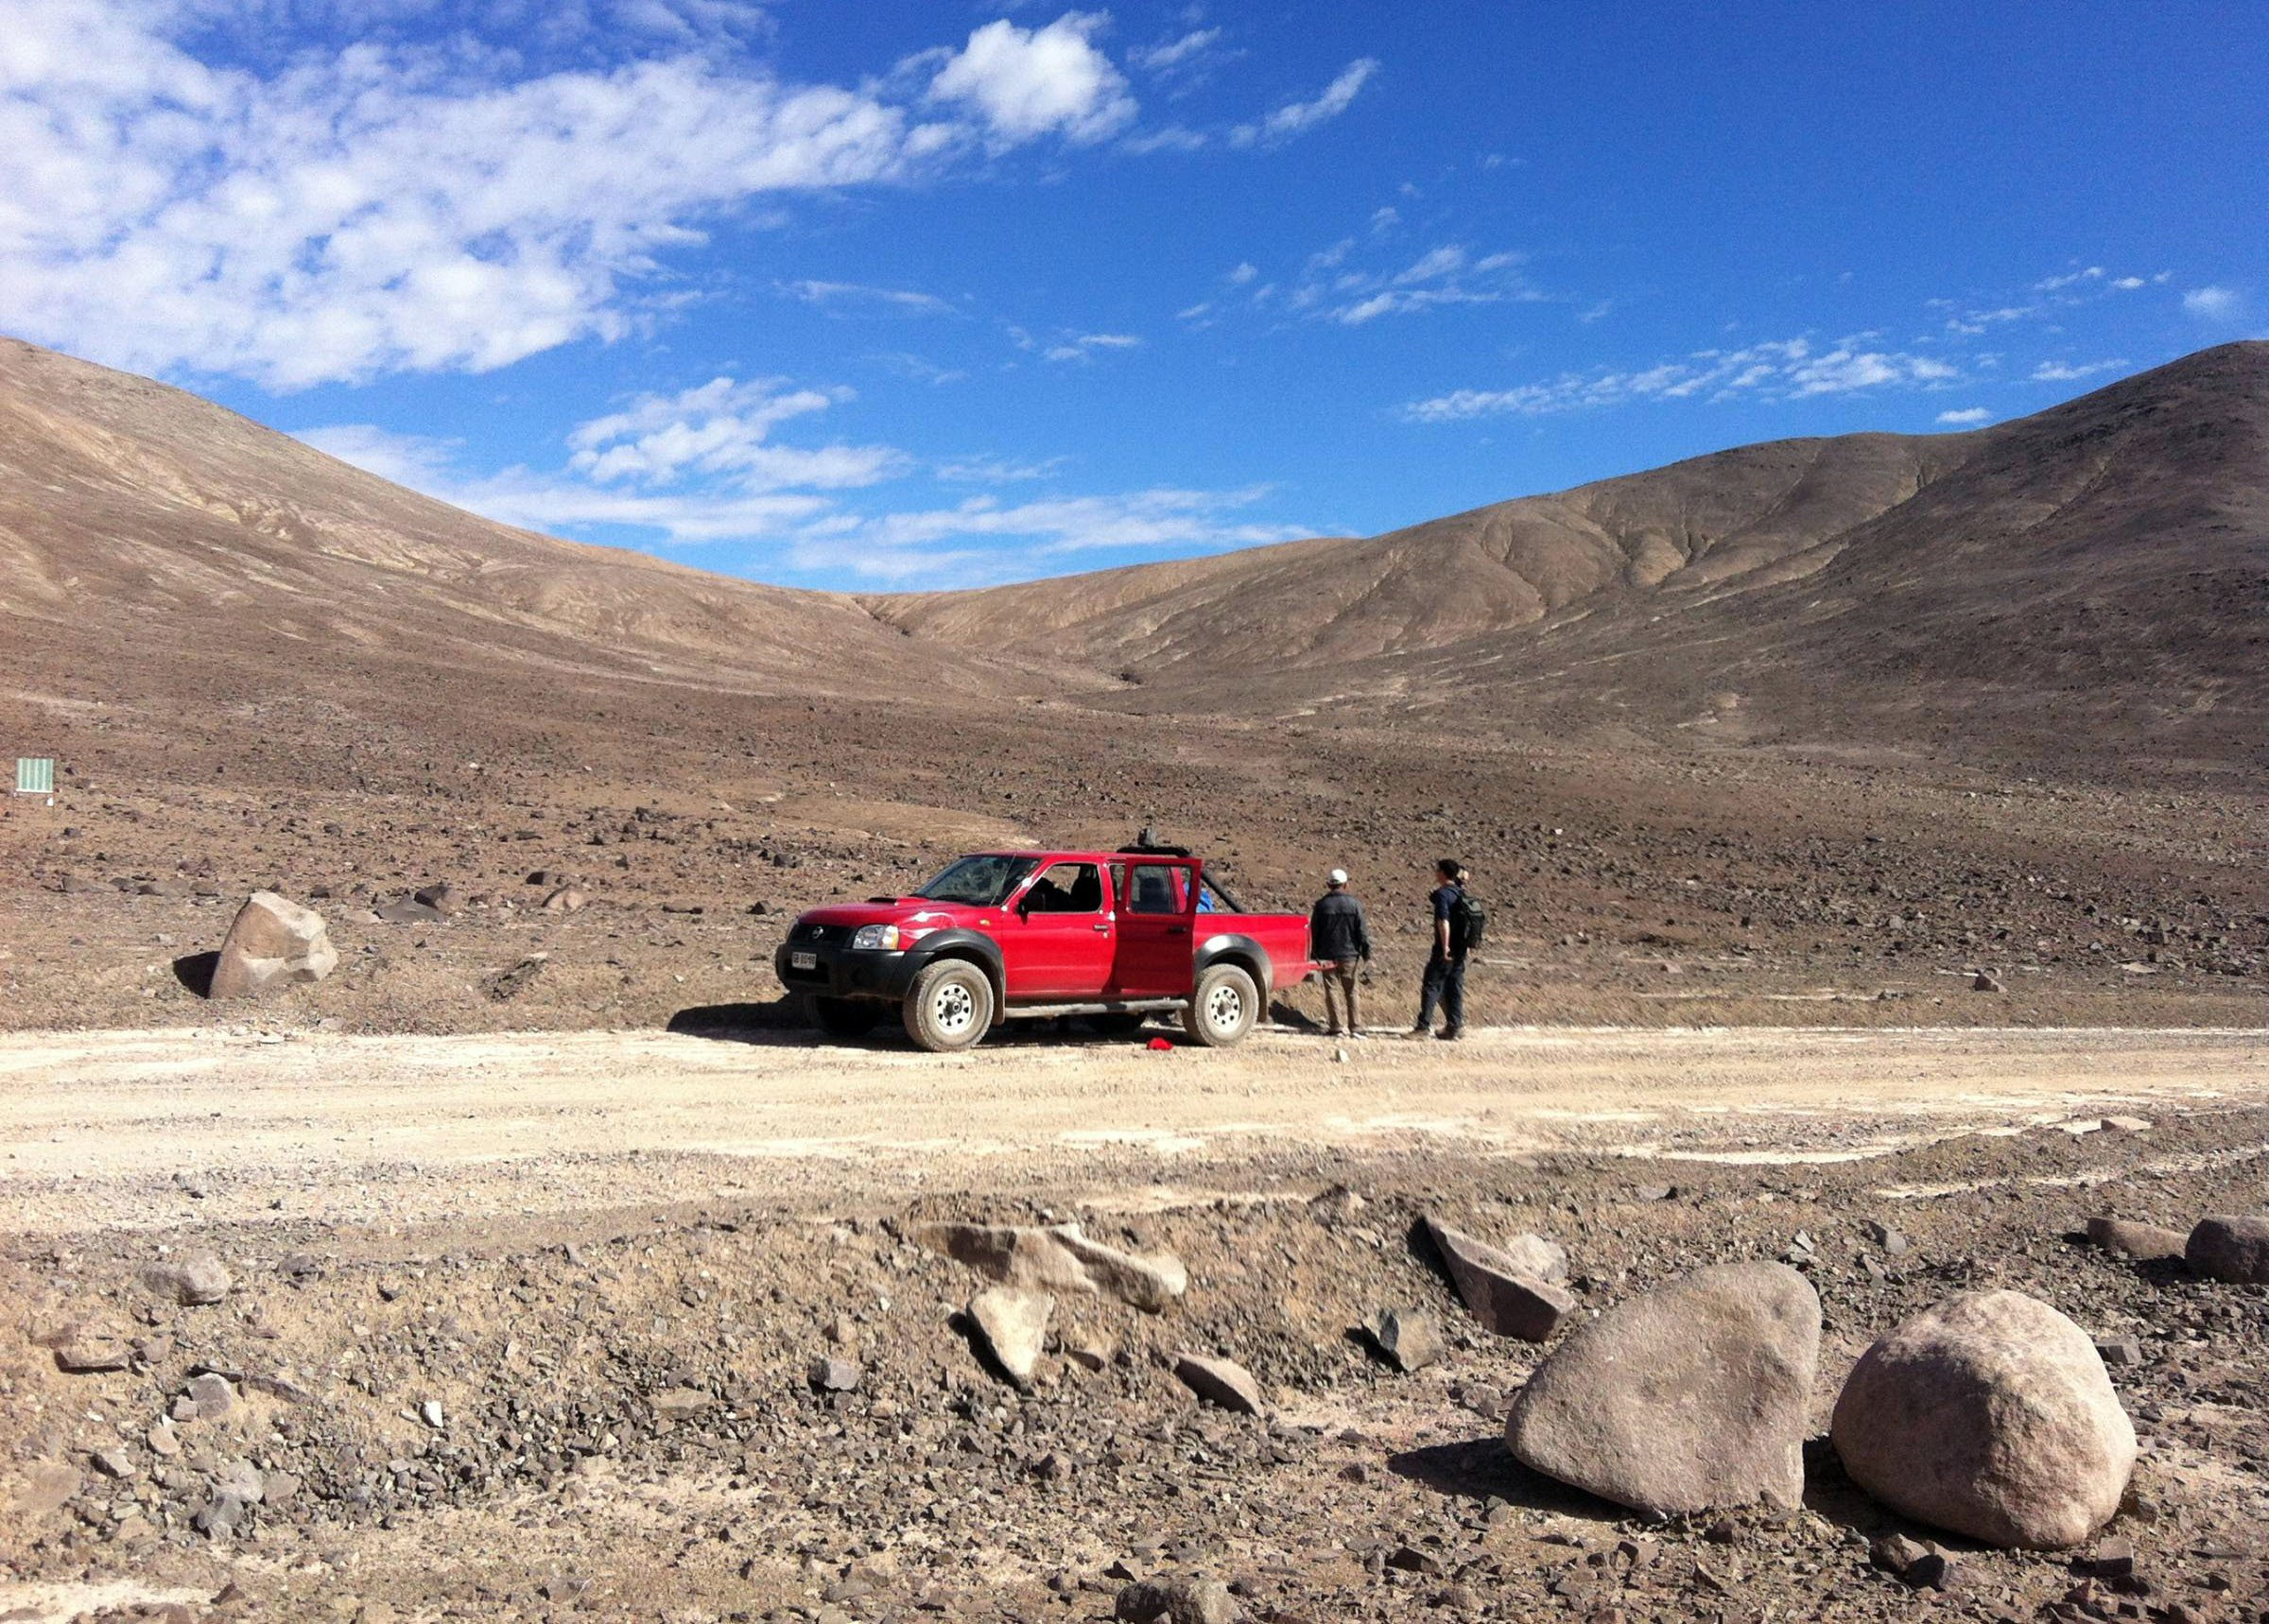 Embargoed to 2000 Monday February 26 Undated Washington State University handout photo of scientists who have driven out into the Atacama desert, in south America, in search of life. PRESS ASSOCIATION Photo. Issue date: Monday February 26, 2018. A freak shower in the world's driest desert has surprised scientists by waking up sleeping microbes - and at the same time increased the chances of finding life on Mars. The US team discovered incredibly hardy bacteria that can lie dormant in the soil for decades without a hint of water. When it unexpectedly rained in their habitat, the most arid corner of South America's Atacama desert, they bounced back into life. See PA story SCIENCE Life. Photo credit should read: Dirk Schulze-Makuch/Washington State University/PA Wire NOTE TO EDITORS: This handout photo may only be used in for editorial reporting purposes for the contemporaneous illustration of events, things or the people in the image or facts mentioned in the caption. Reuse of the picture may require further permission from the copyright holder.